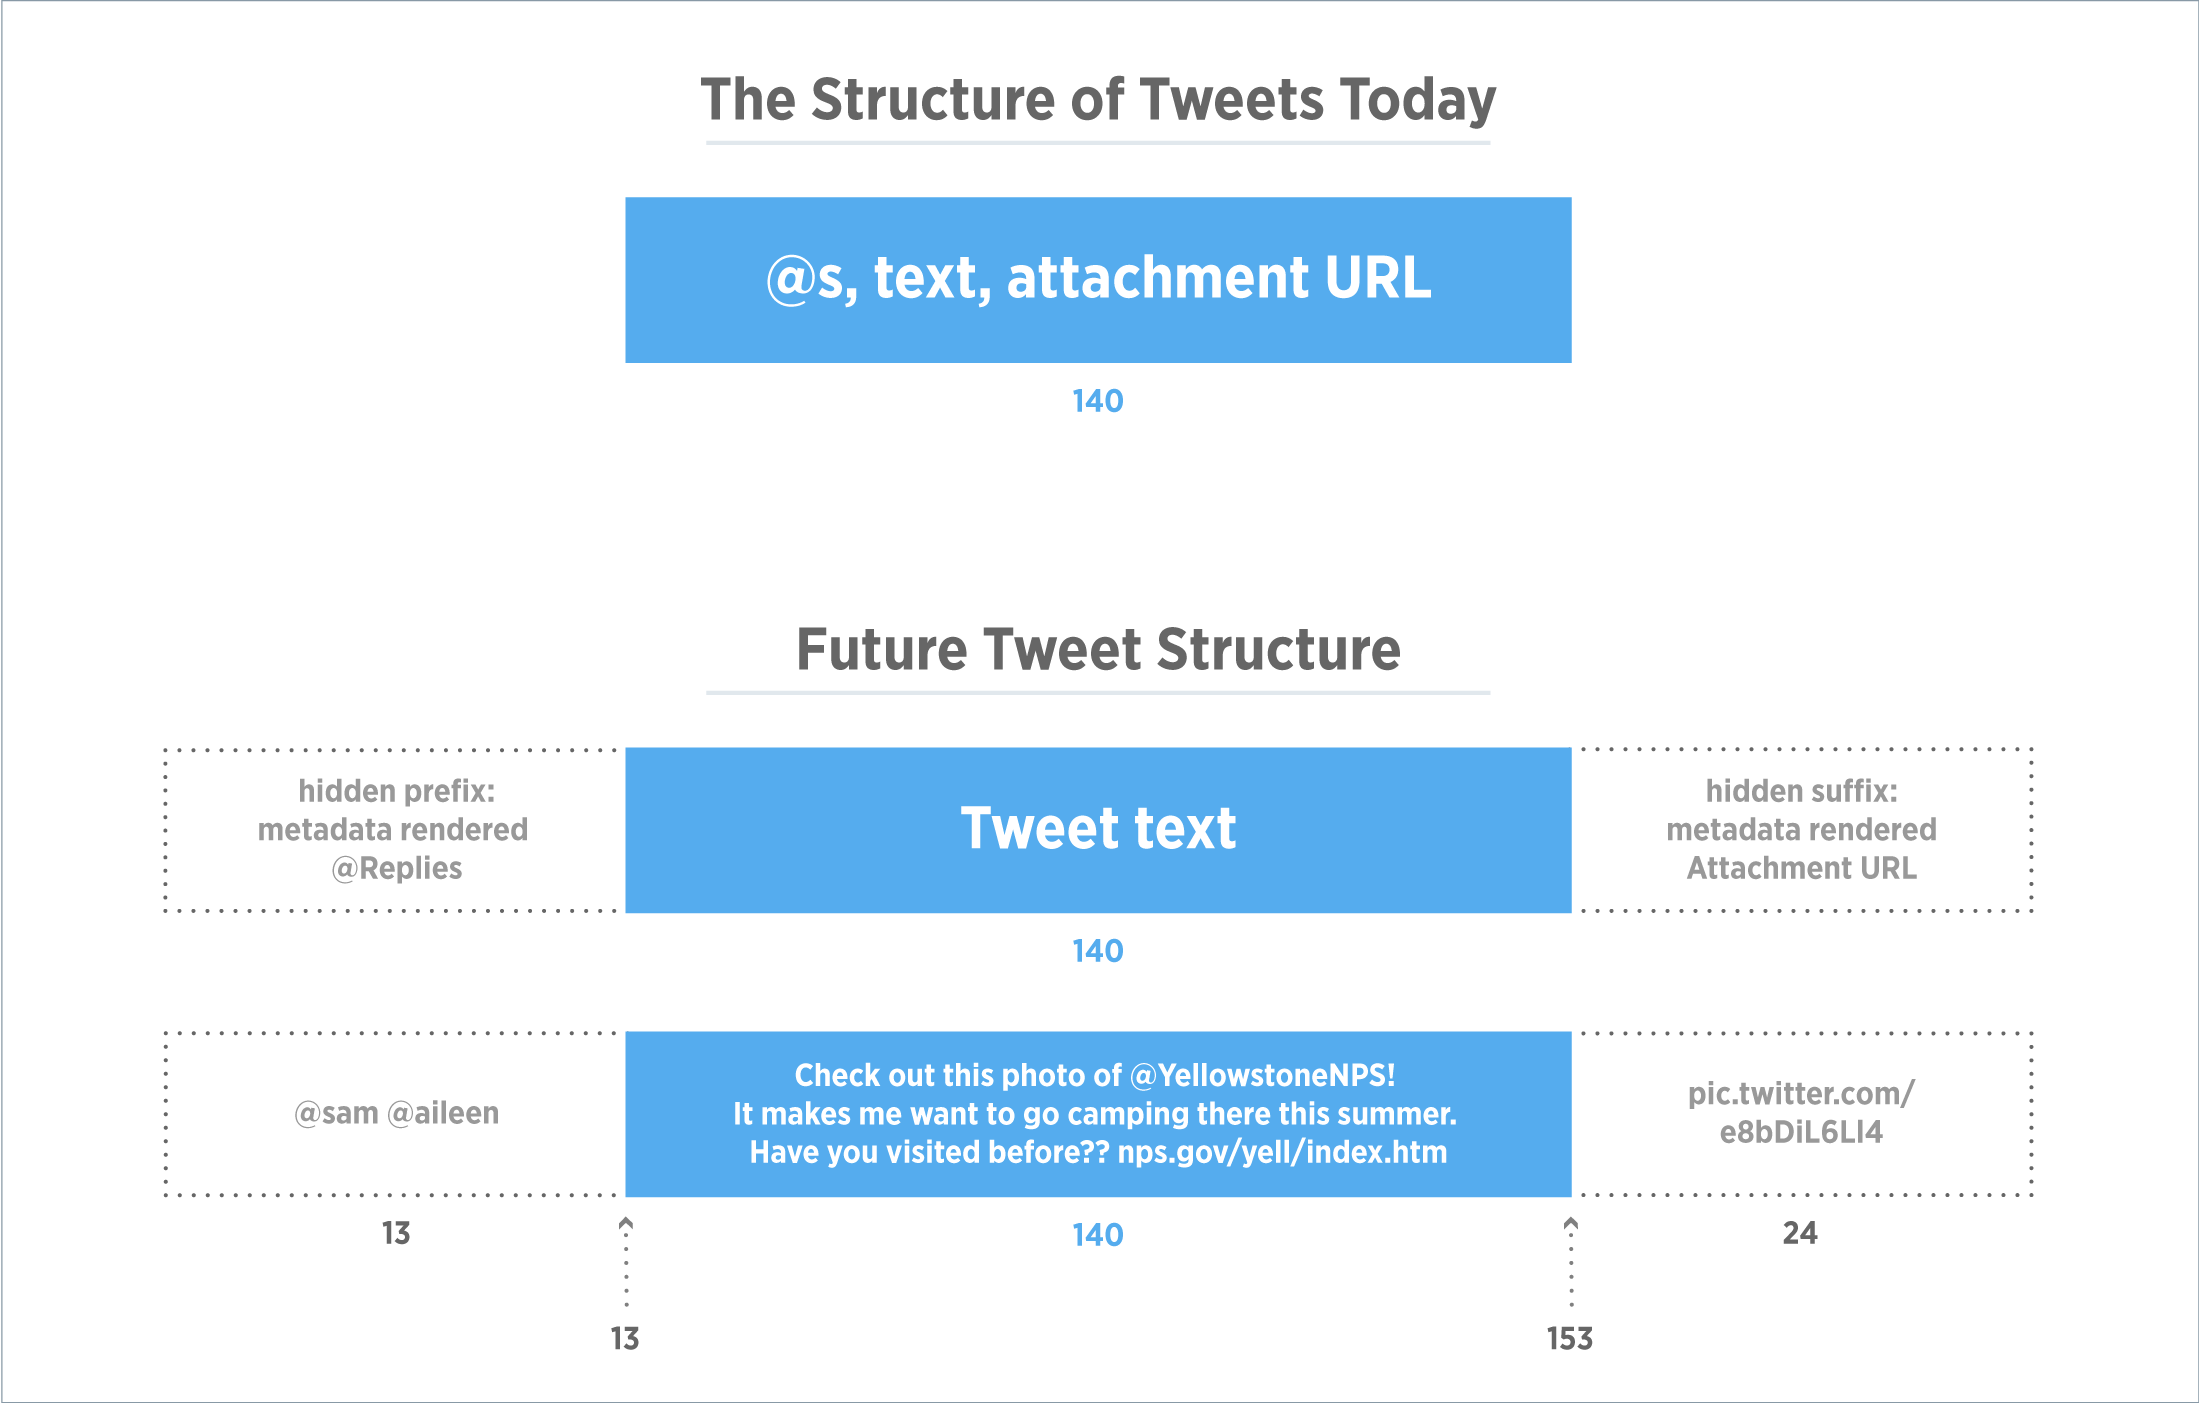 With Twitter's updated policy around character count, this graphic highlights how developers should view the new tweet structure.